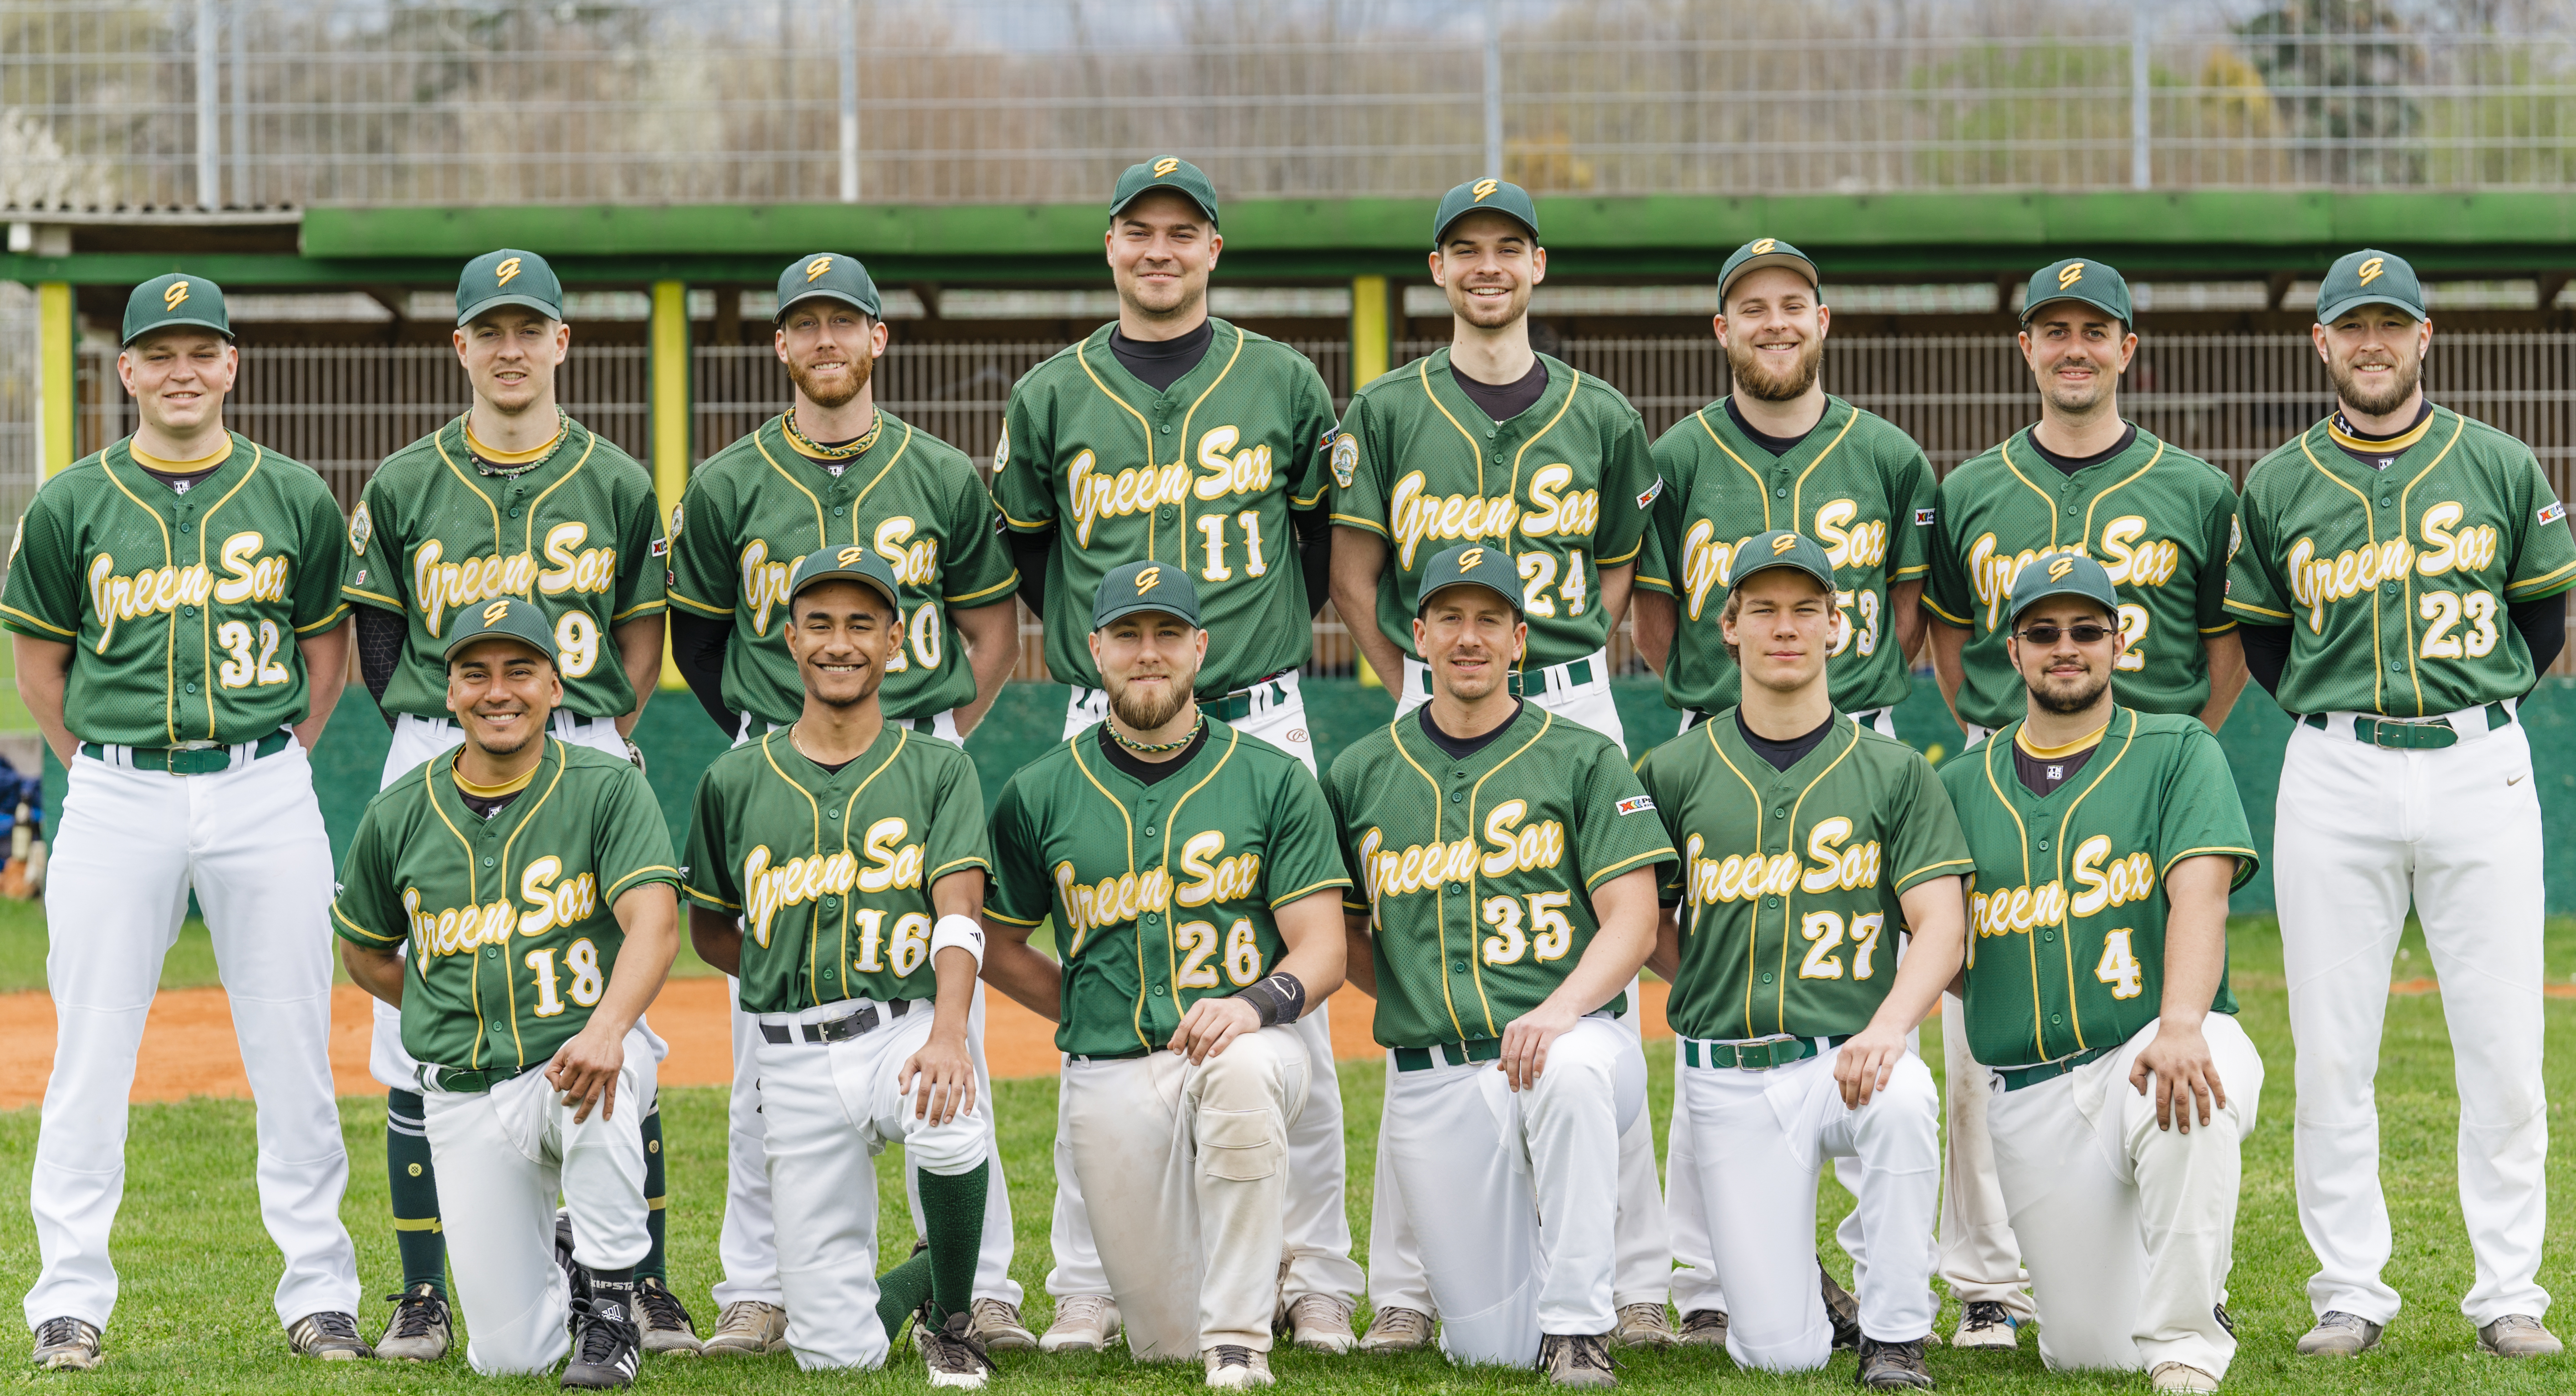 Greensox-3-.jpg